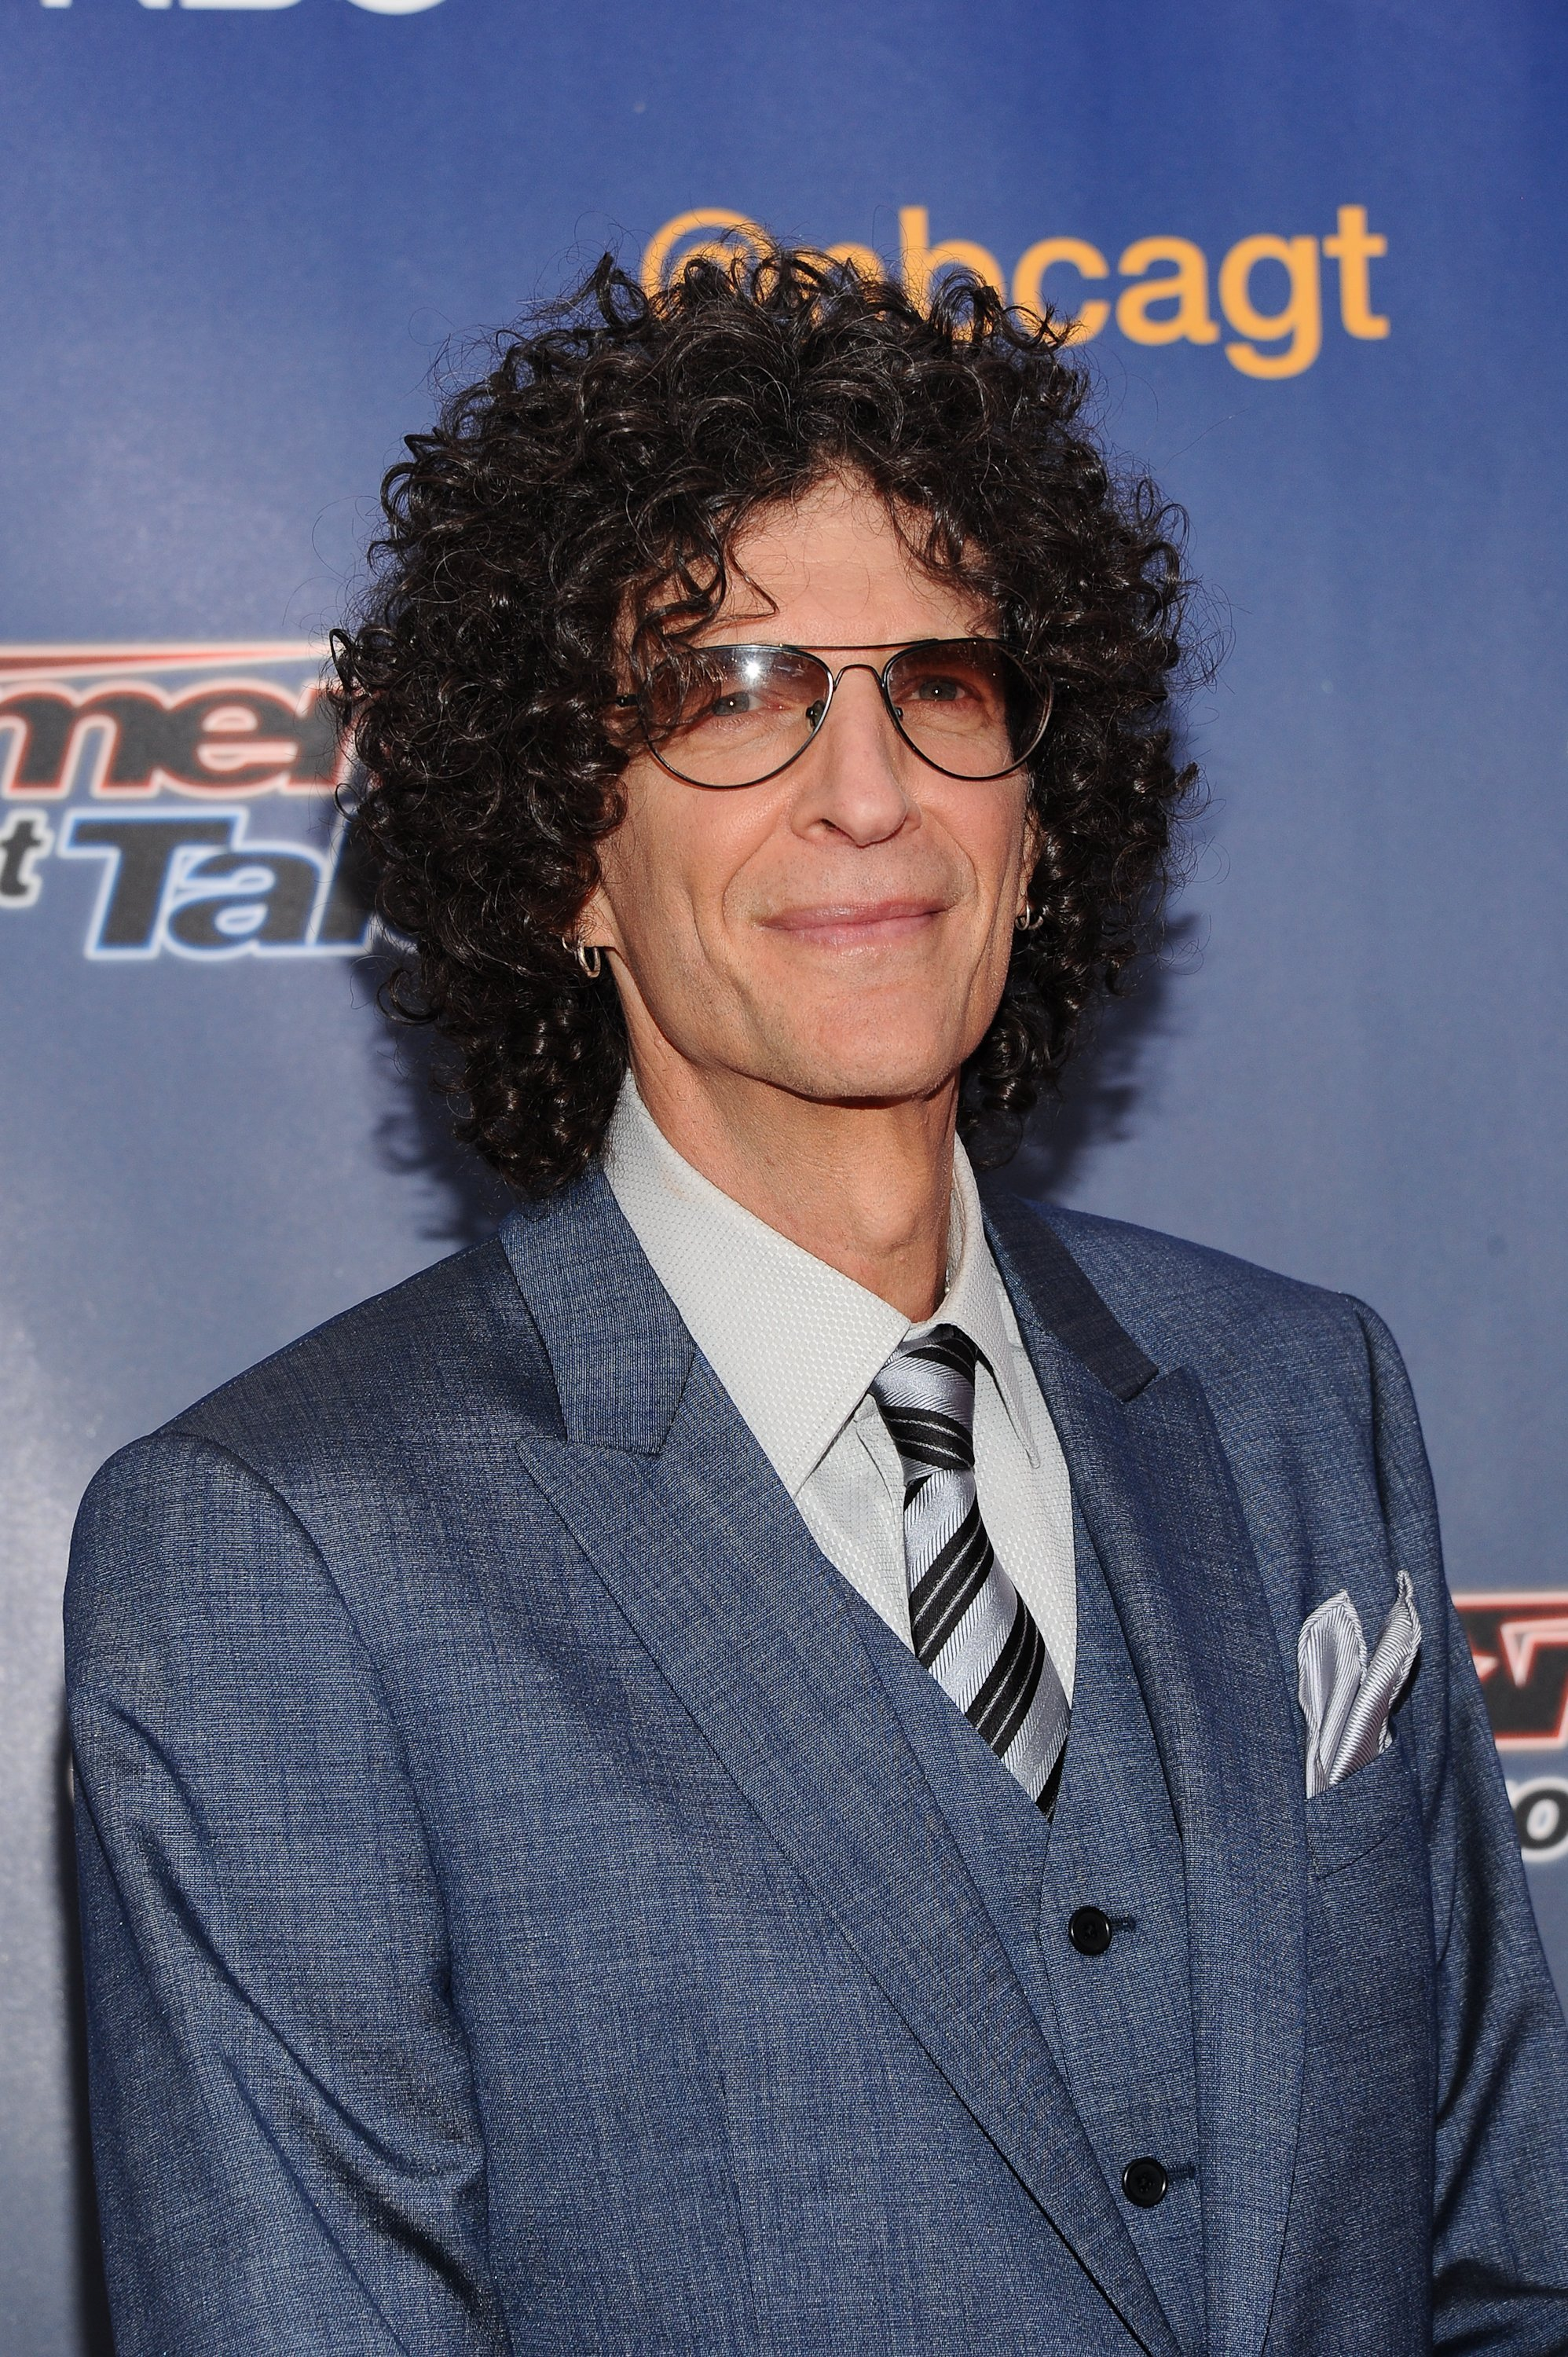 """Howard Stern attends the """"America's Got Talent"""" Season 9 Pre Show Red Carpet Event at Radio City Music Hall on July 29, 2014. 